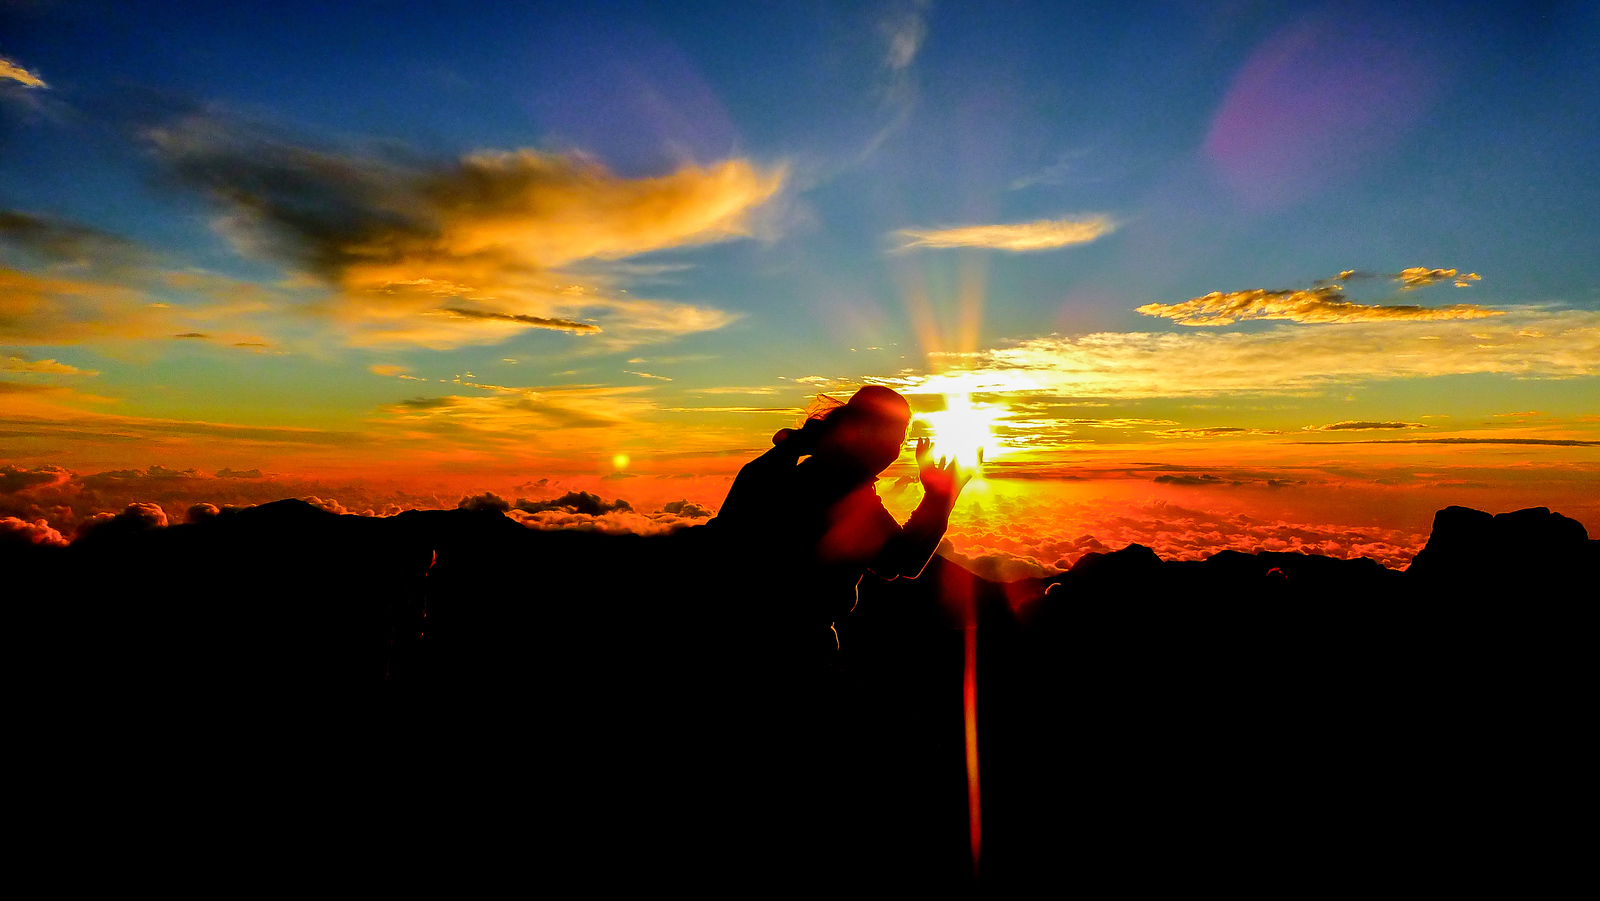 3 Week Hawaii Itinerary. Sunrise at Haleakala Volcano